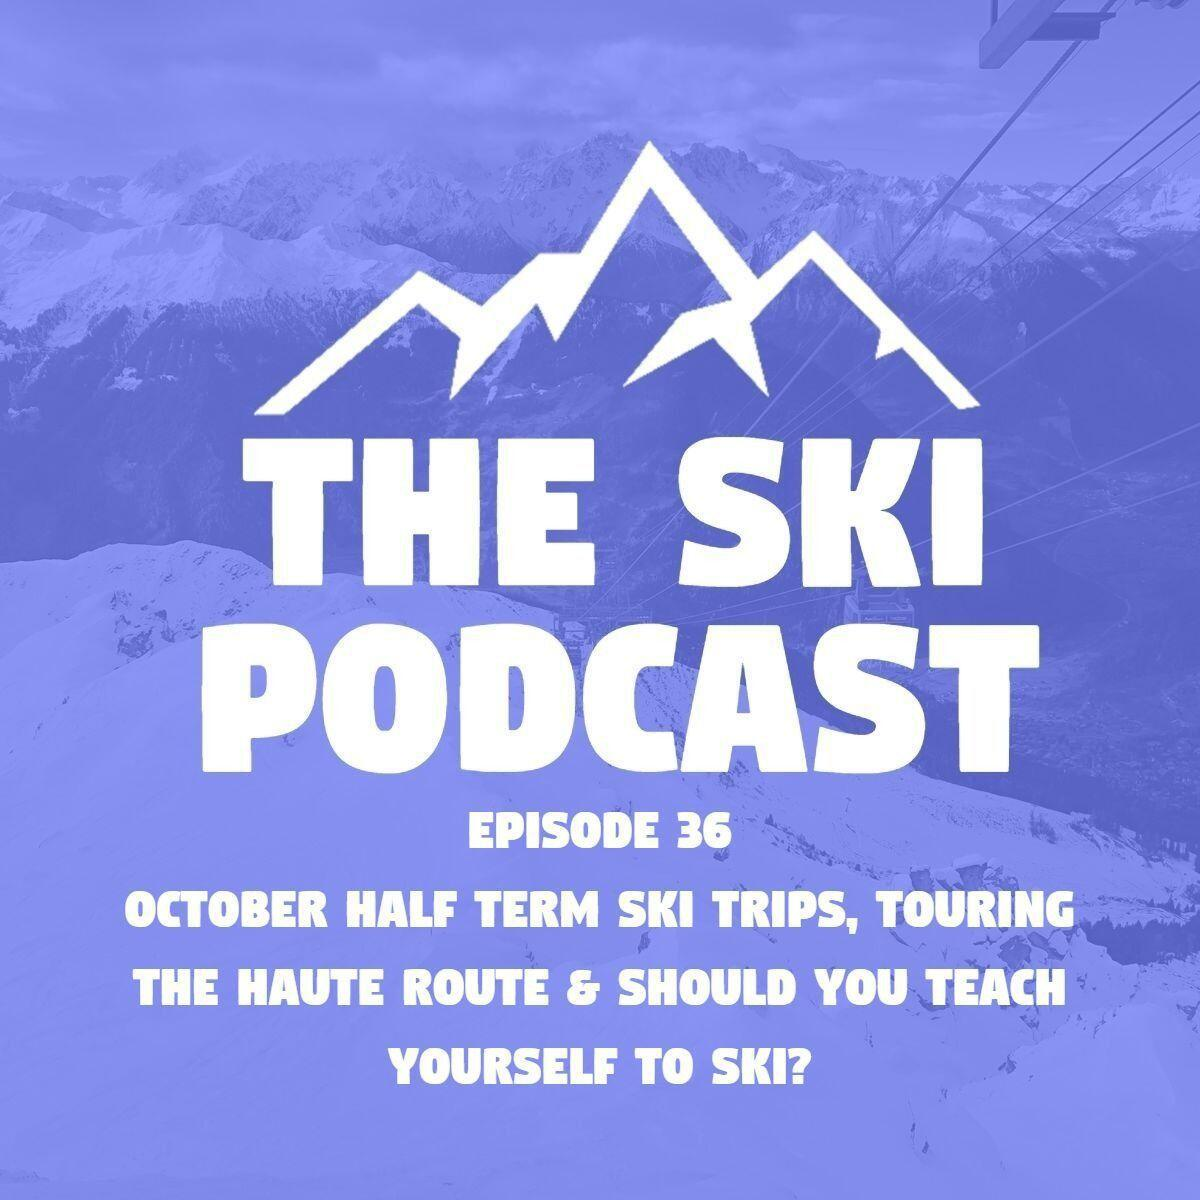 36: October Half Term Ski Trips, Touring The Haute Route & Should You Teach Yourself to Ski?